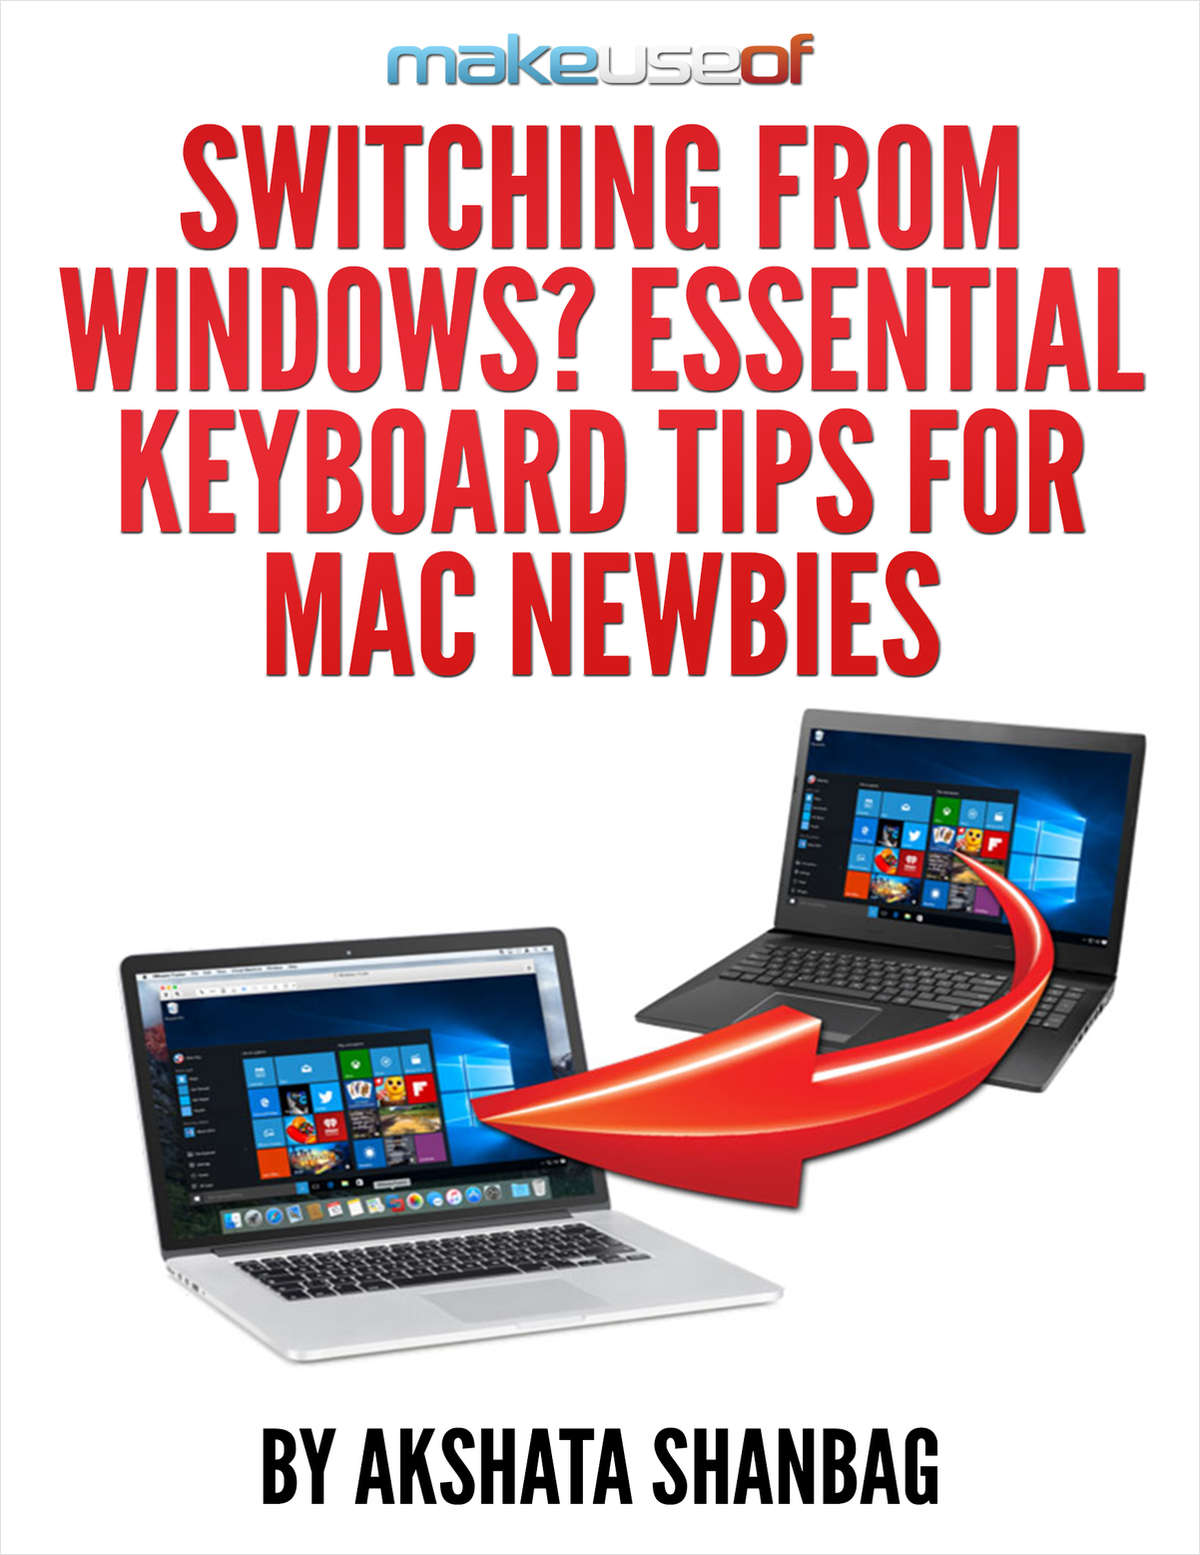 windows tips for mac switchers